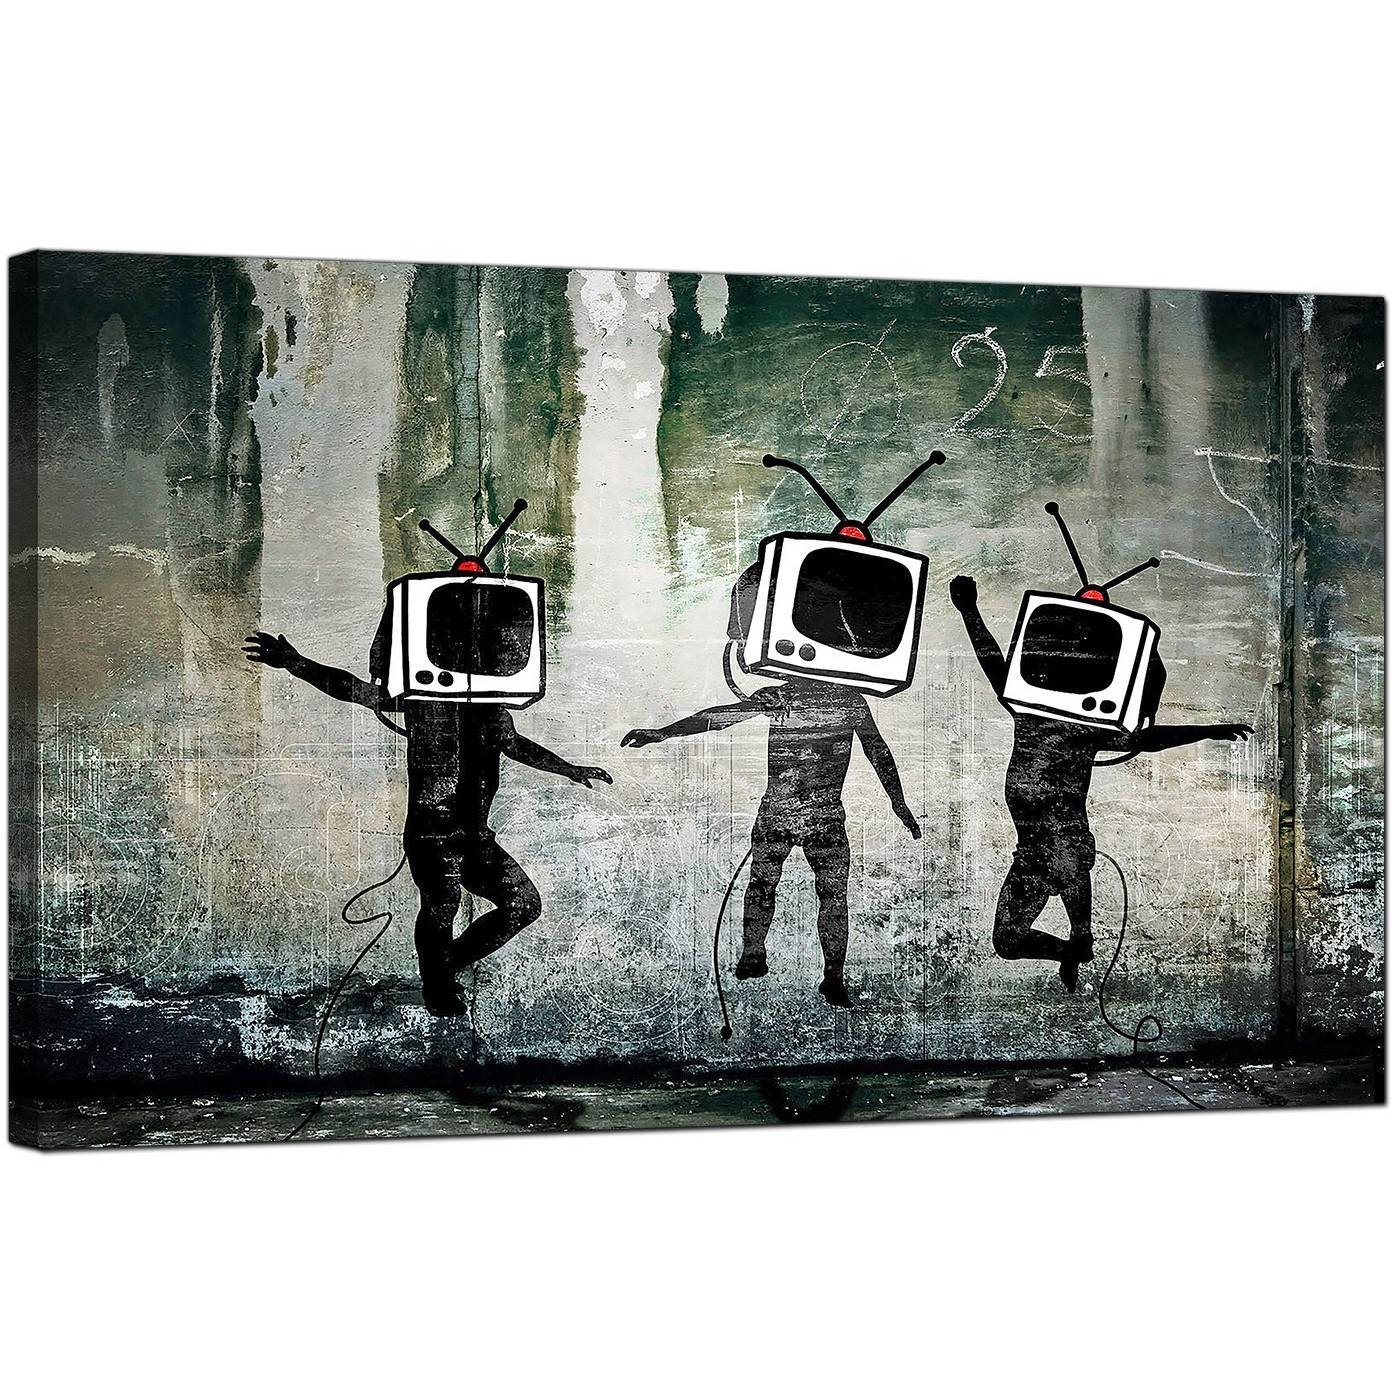 Banksy Canvas Prints – Tv Heads Intended For Most Recent Banksy Canvas Wall Art (View 8 of 20)